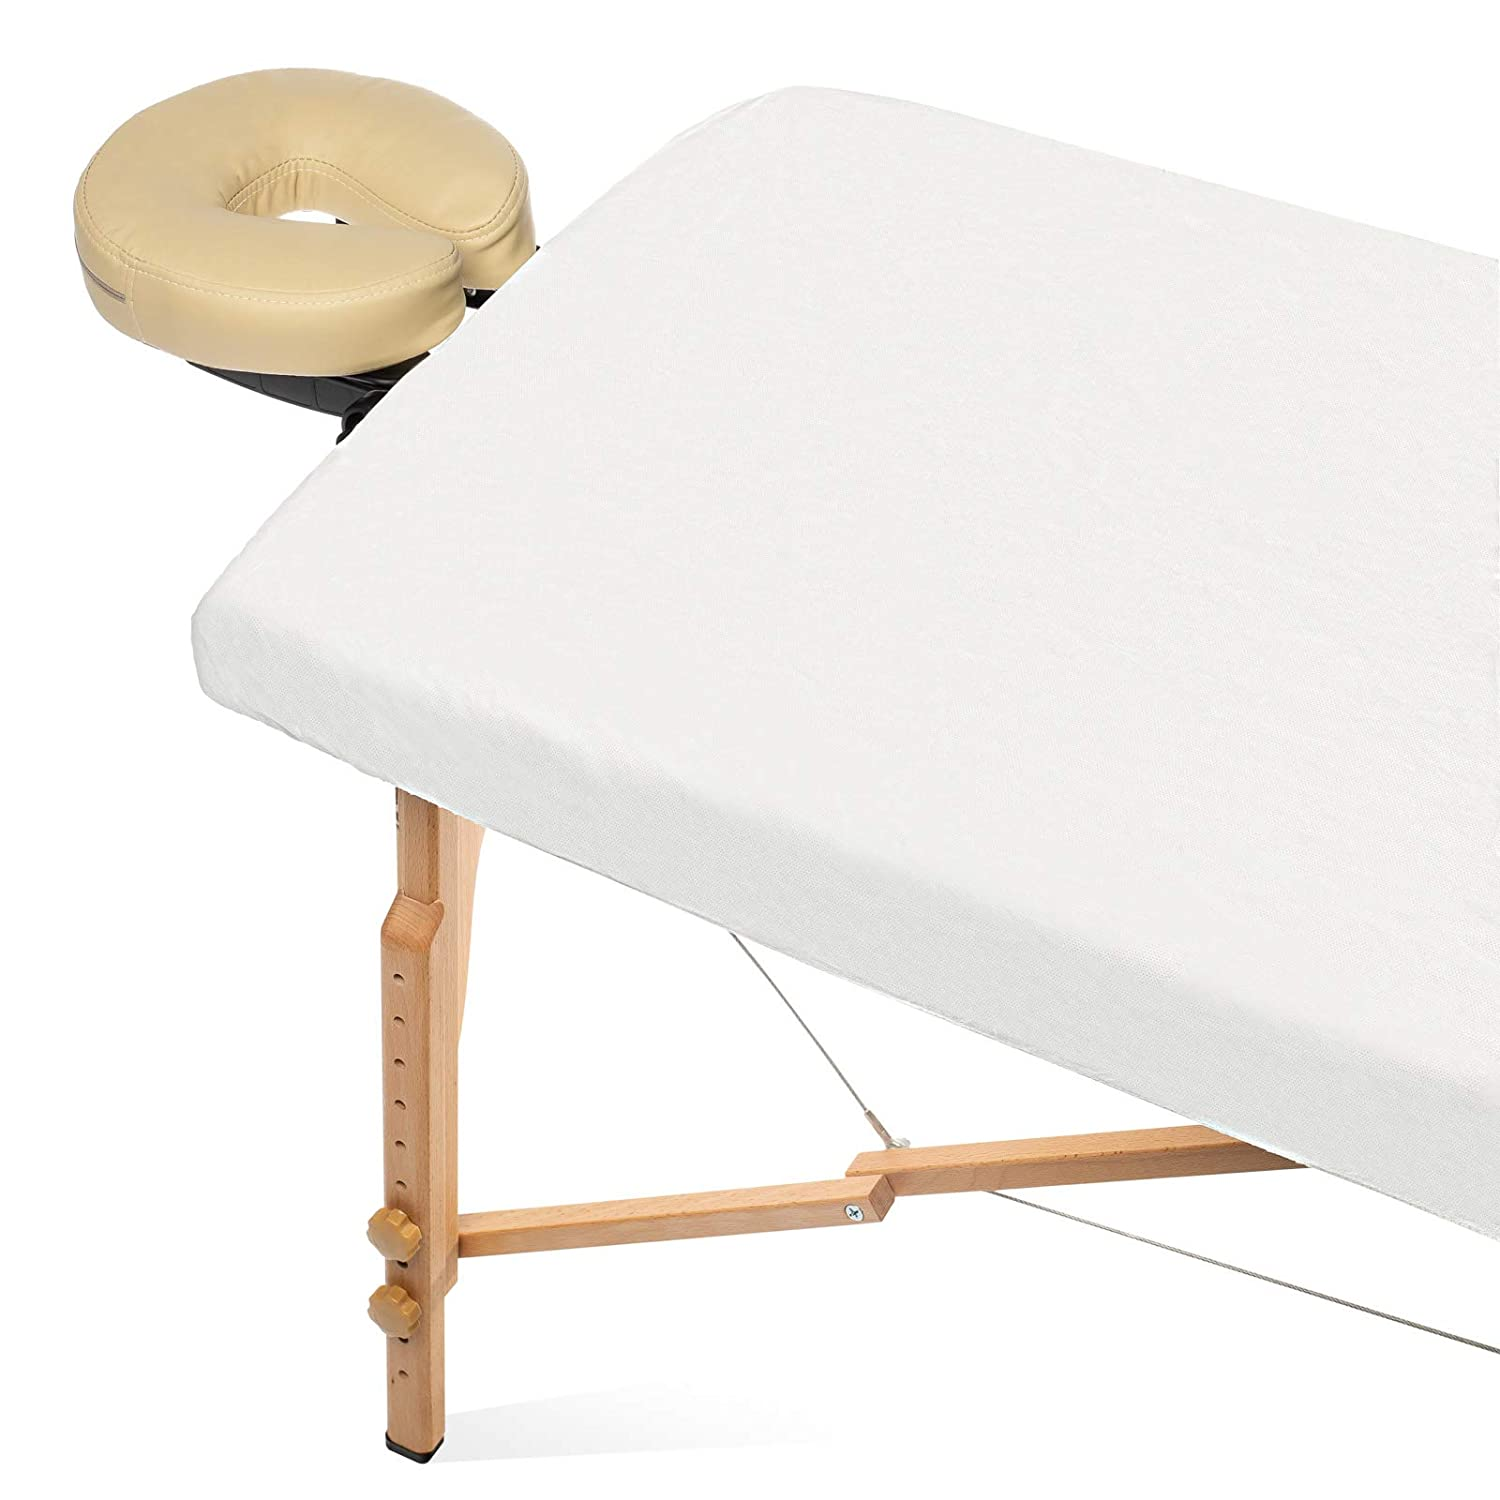 Saloniture 10 Disposable Fitted Massage Table Covers - Single Use Facial Bed Salon Spa Sheets